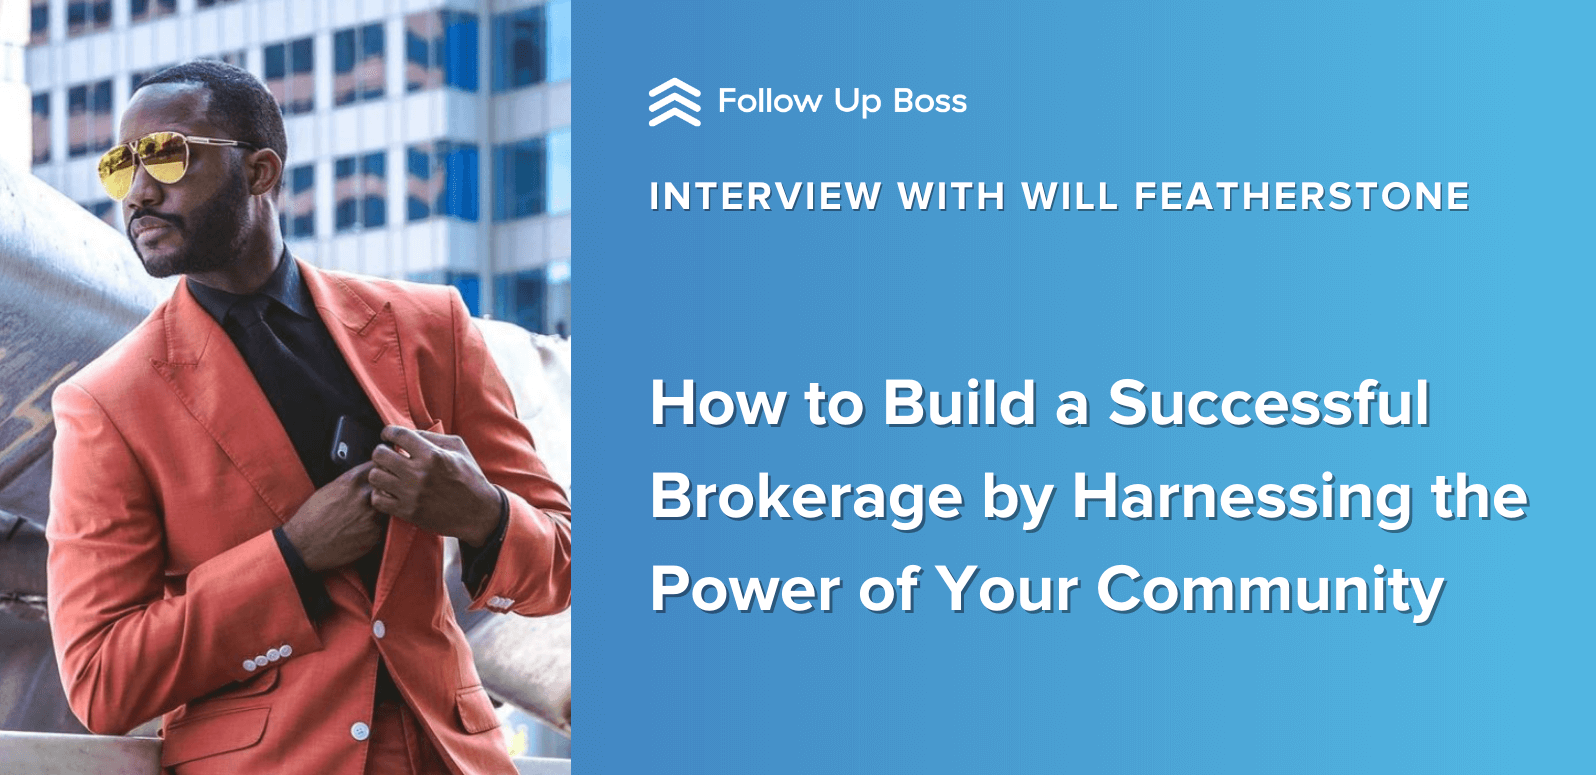 How to Build a Successful Brokerage by Harnessing the Power of Your Community